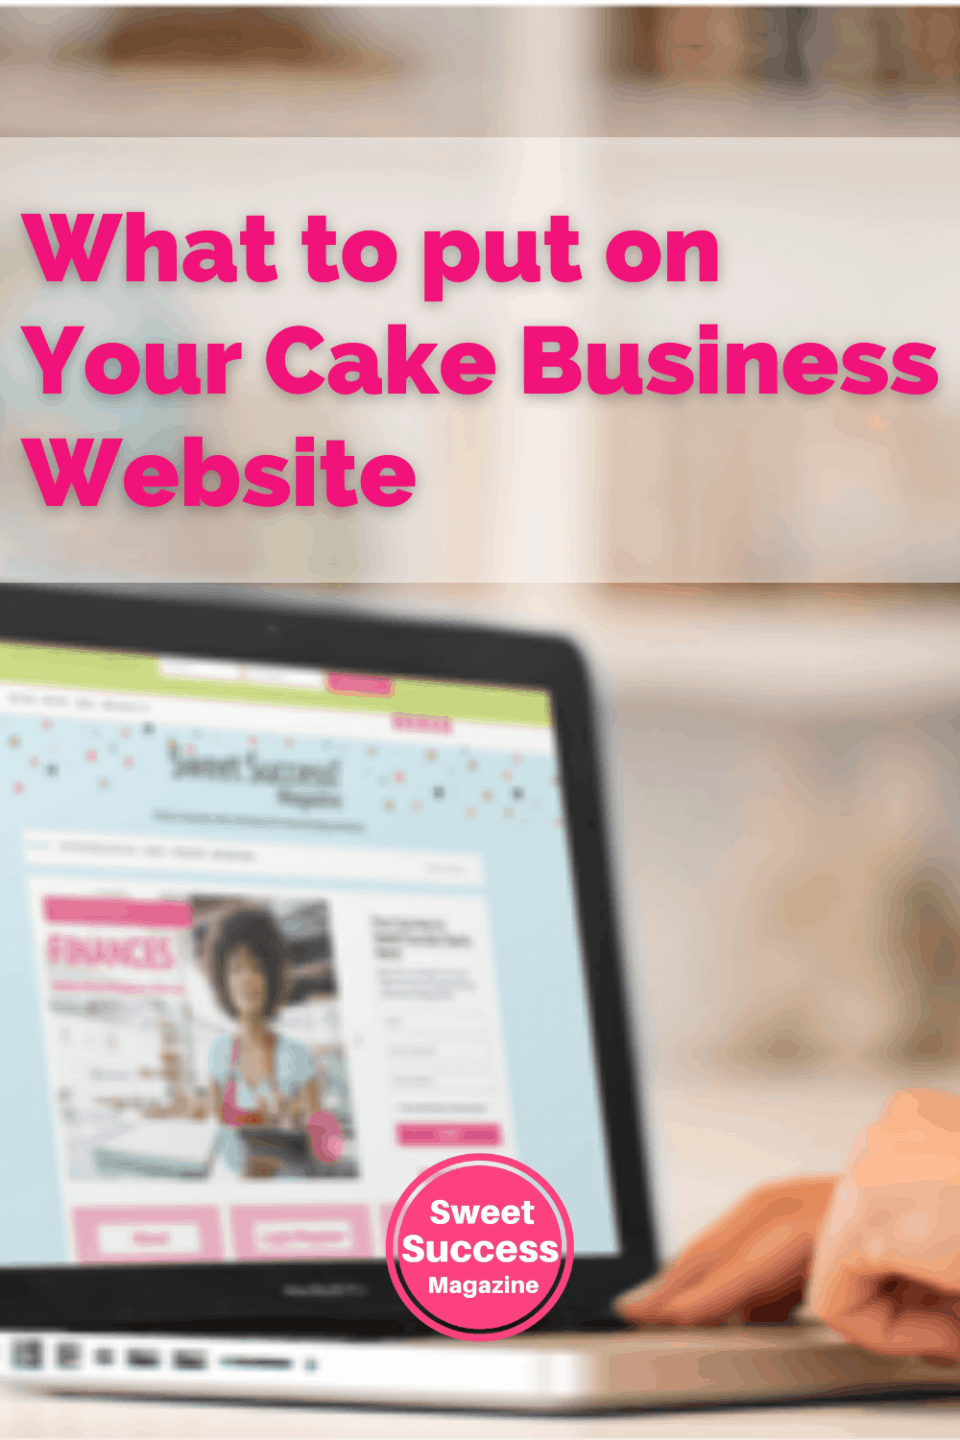 someone typing on a laptop with a cake business website on the screen